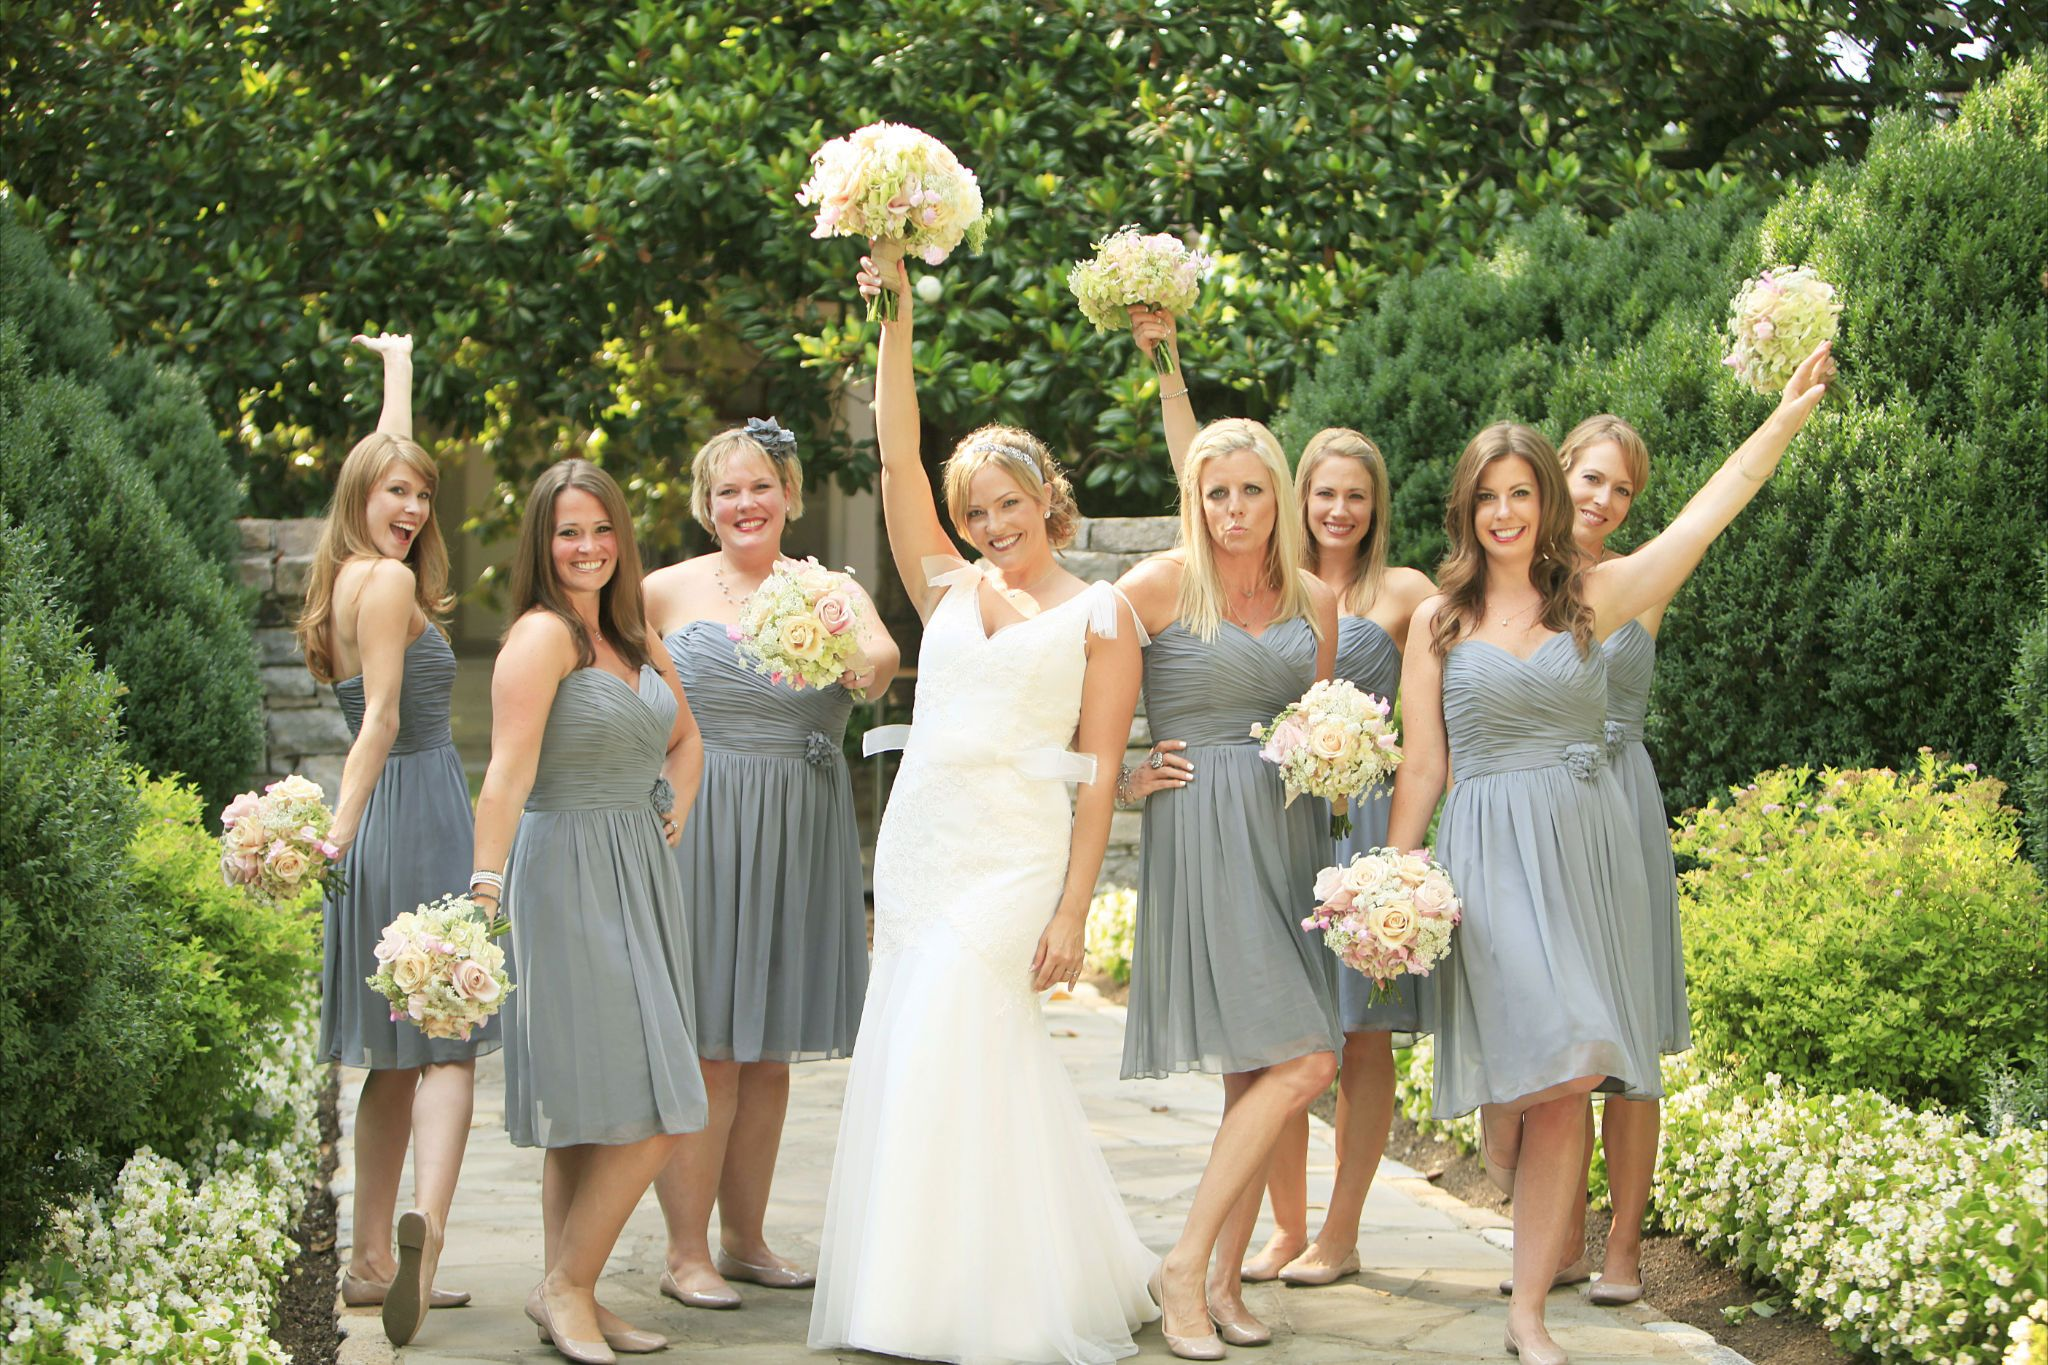 Grey bridesmaid dresses google search bridesmaids and grey bridesmaid dresses google search rustic wedding photosrustic country ombrellifo Images